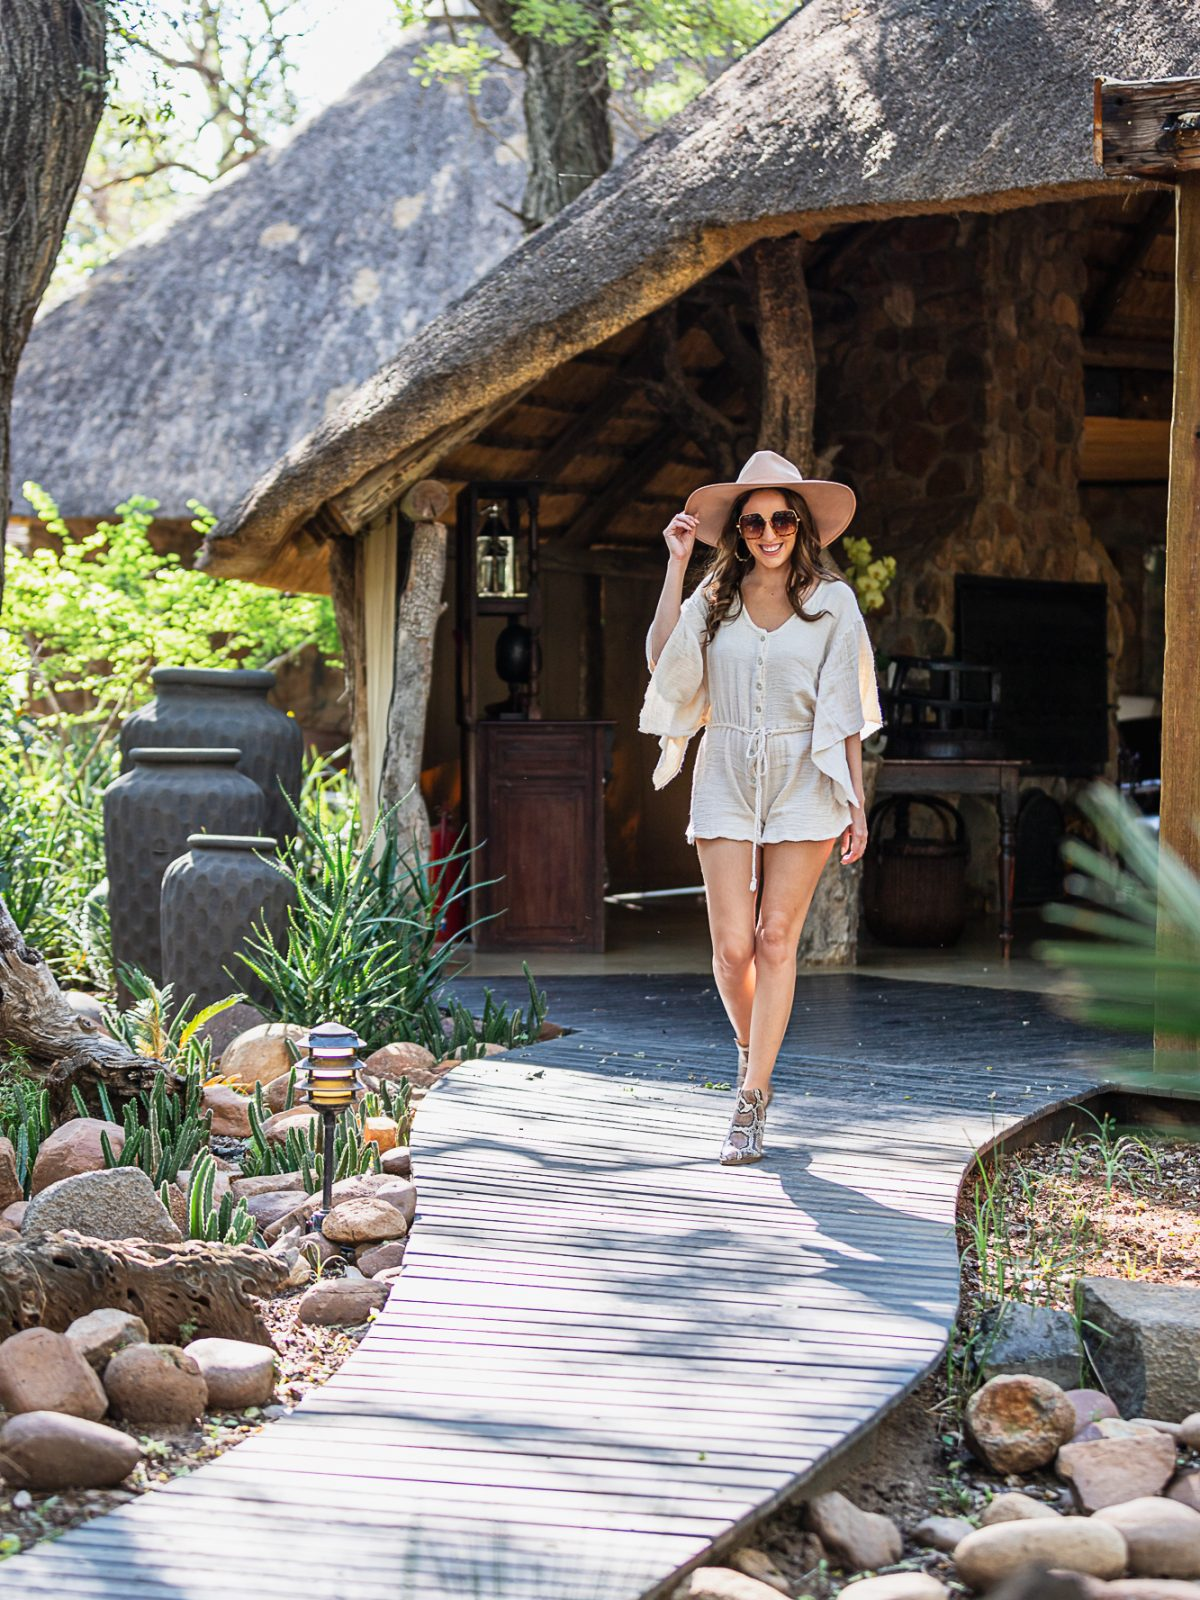 where to stay near kruger national park, where to stay in sabi sands, where to stay on a safari in South Africa, The Best Luxury Safari Lodge in Sabi Sands, dulini private game reserve review, dulini south africa review, dulini sabi sands review